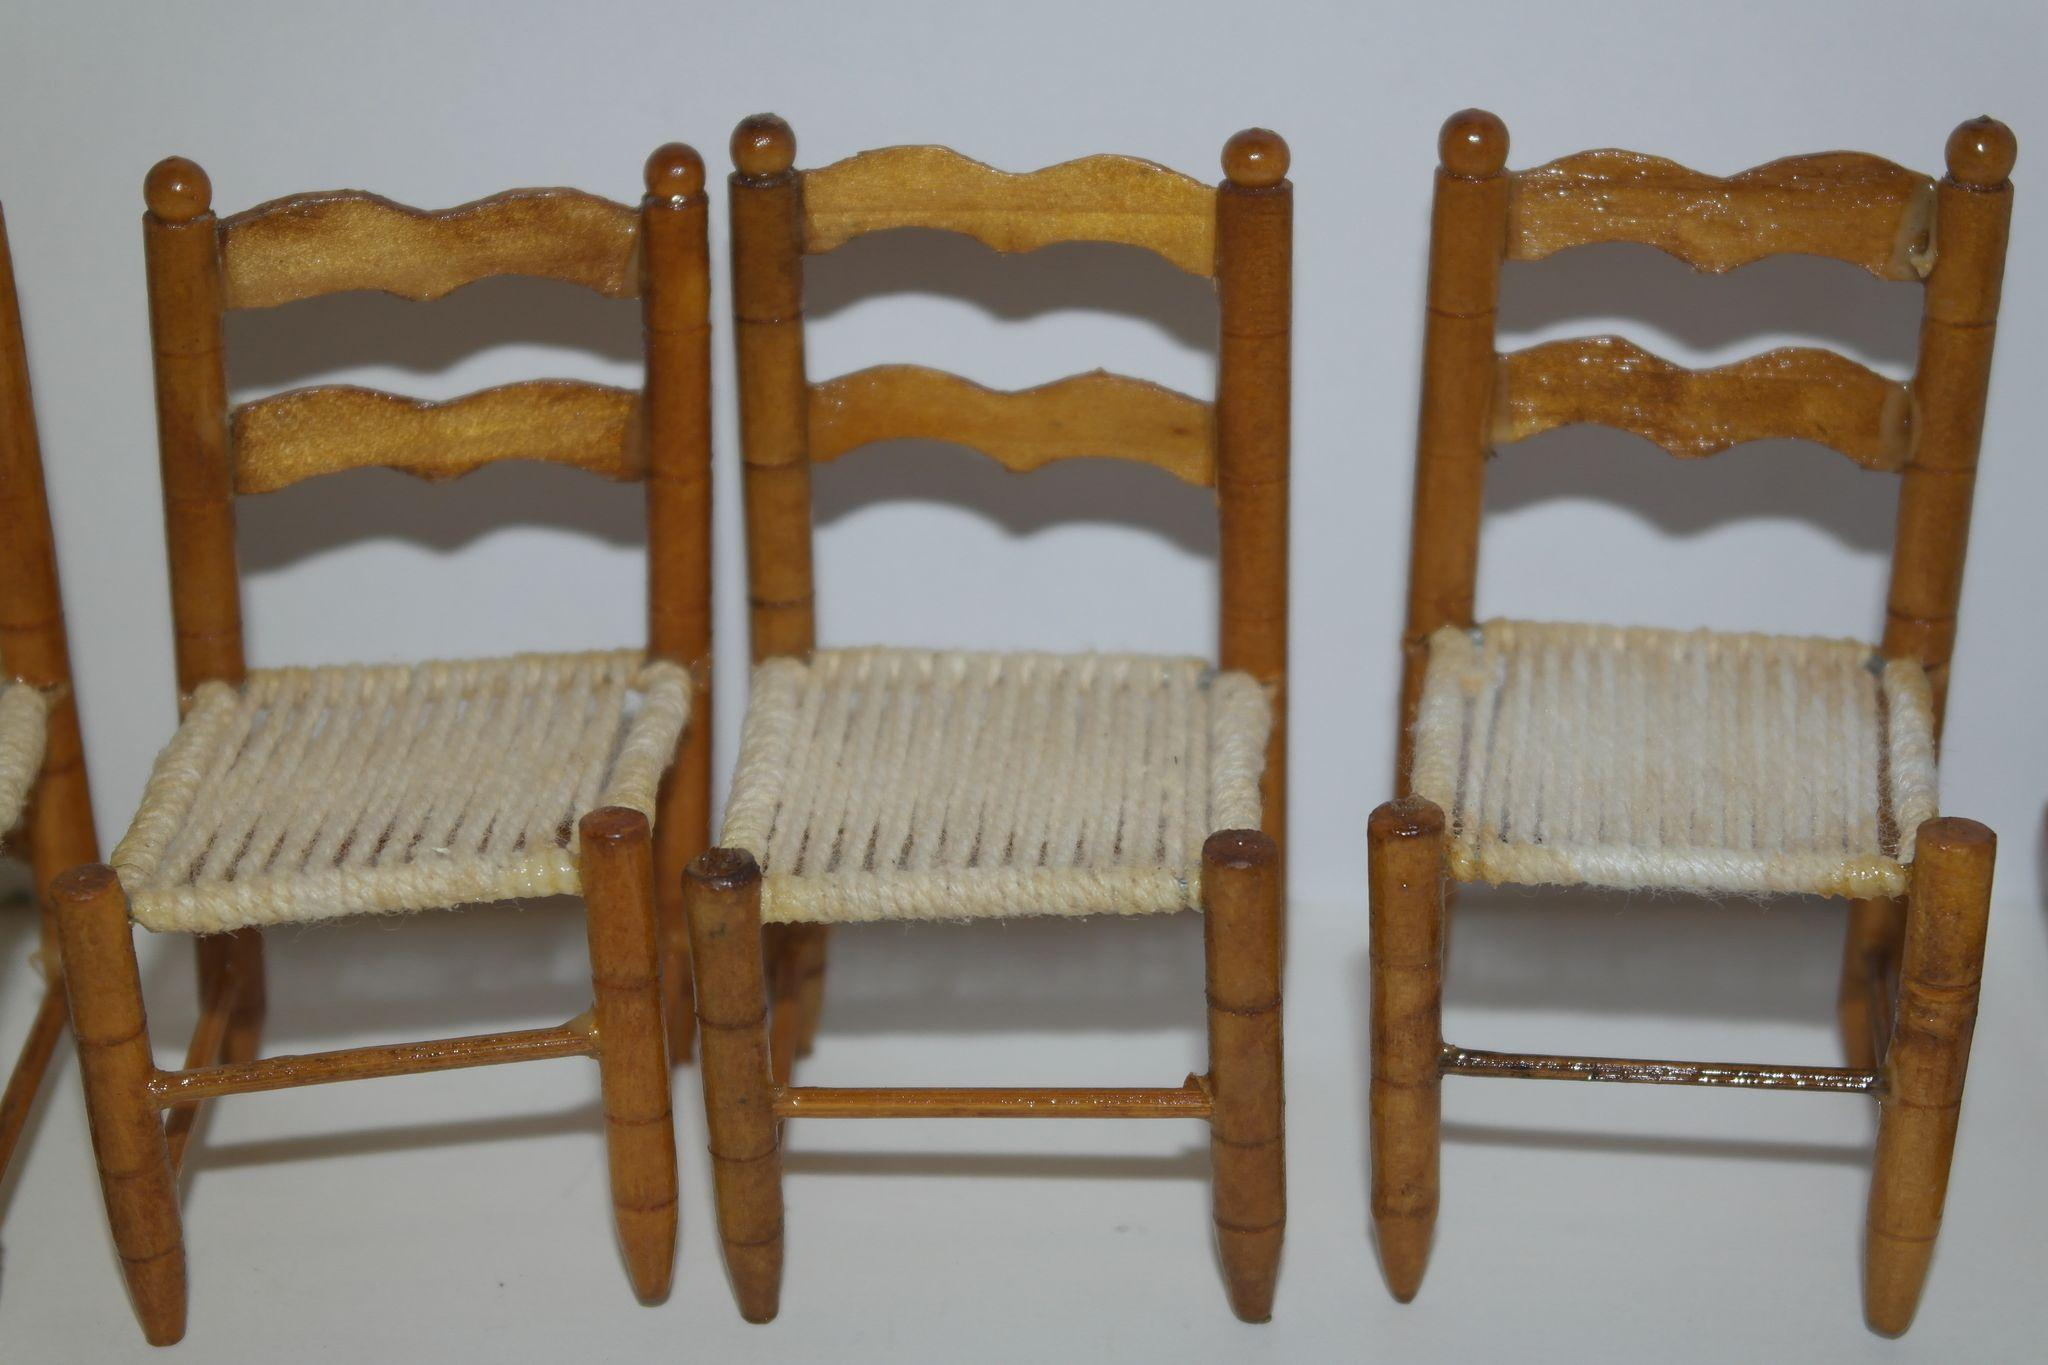 Superb img of Wooden Doll House Chairs with Woven Seats from debscedarchest on Ruby  with #684421 color and 2048x1365 pixels